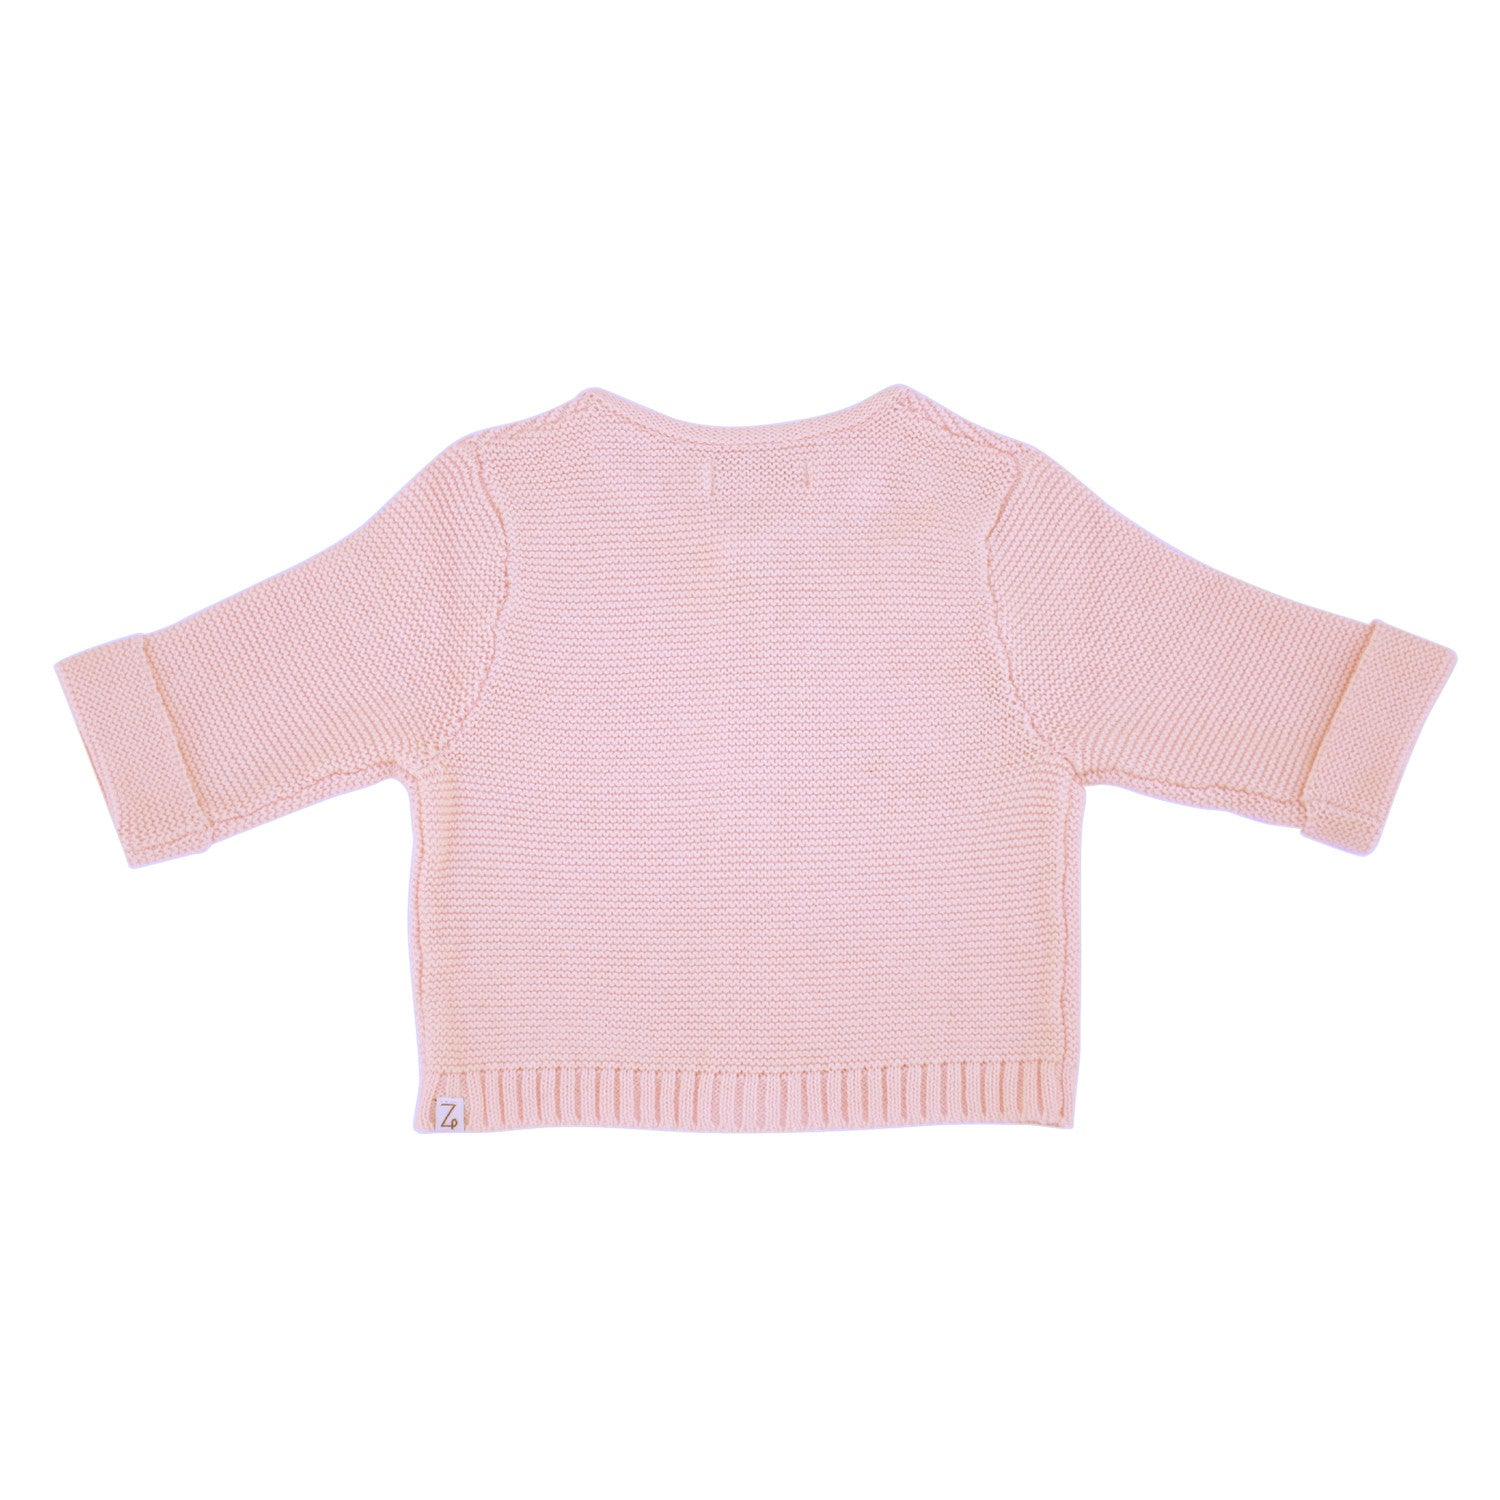 pink baby cardigan back